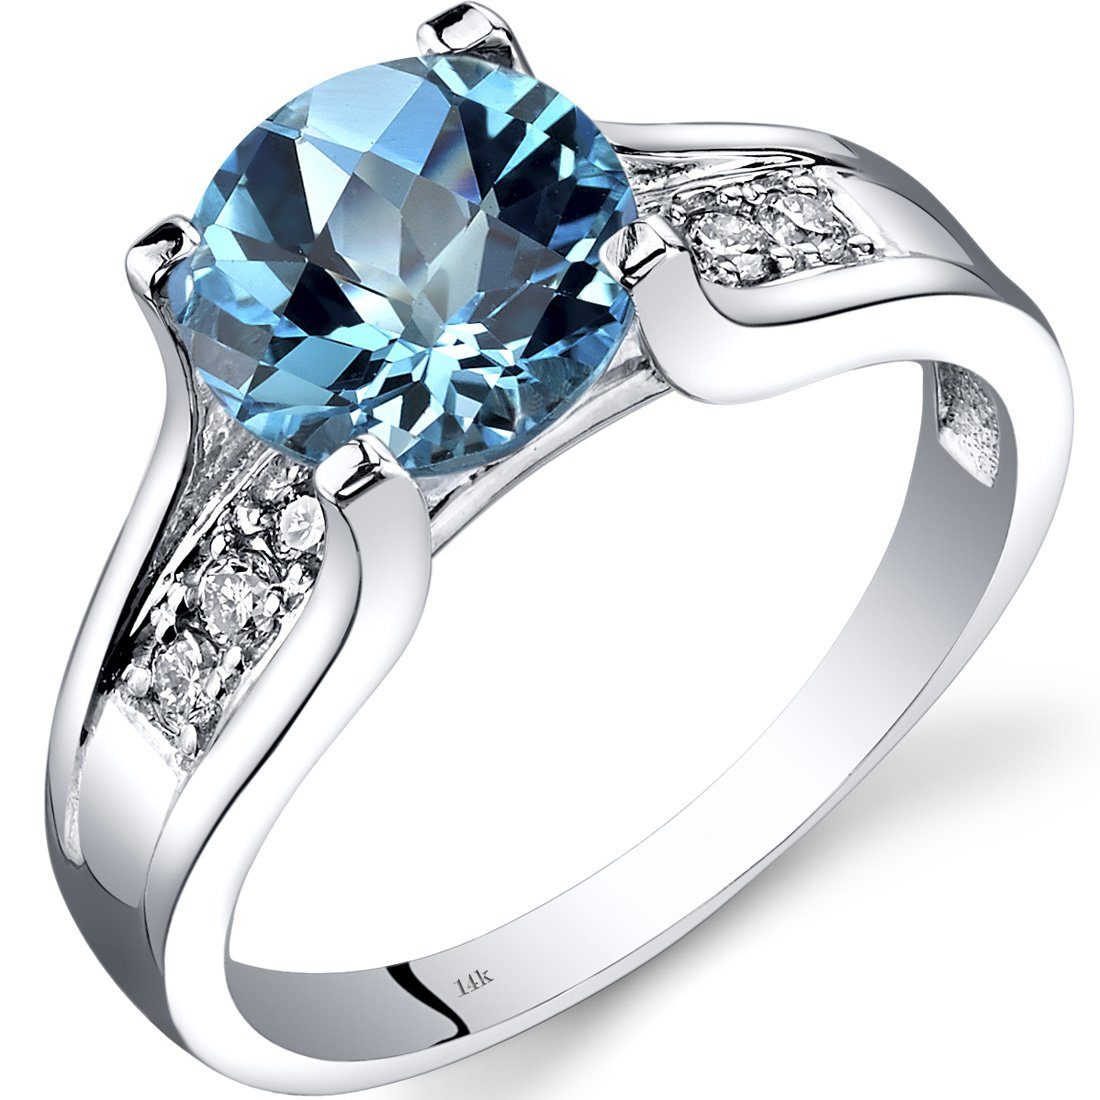 14K White Gold Swiss Blue Topaz Diamond Cocktail Ring 2.25 Carats Size 6